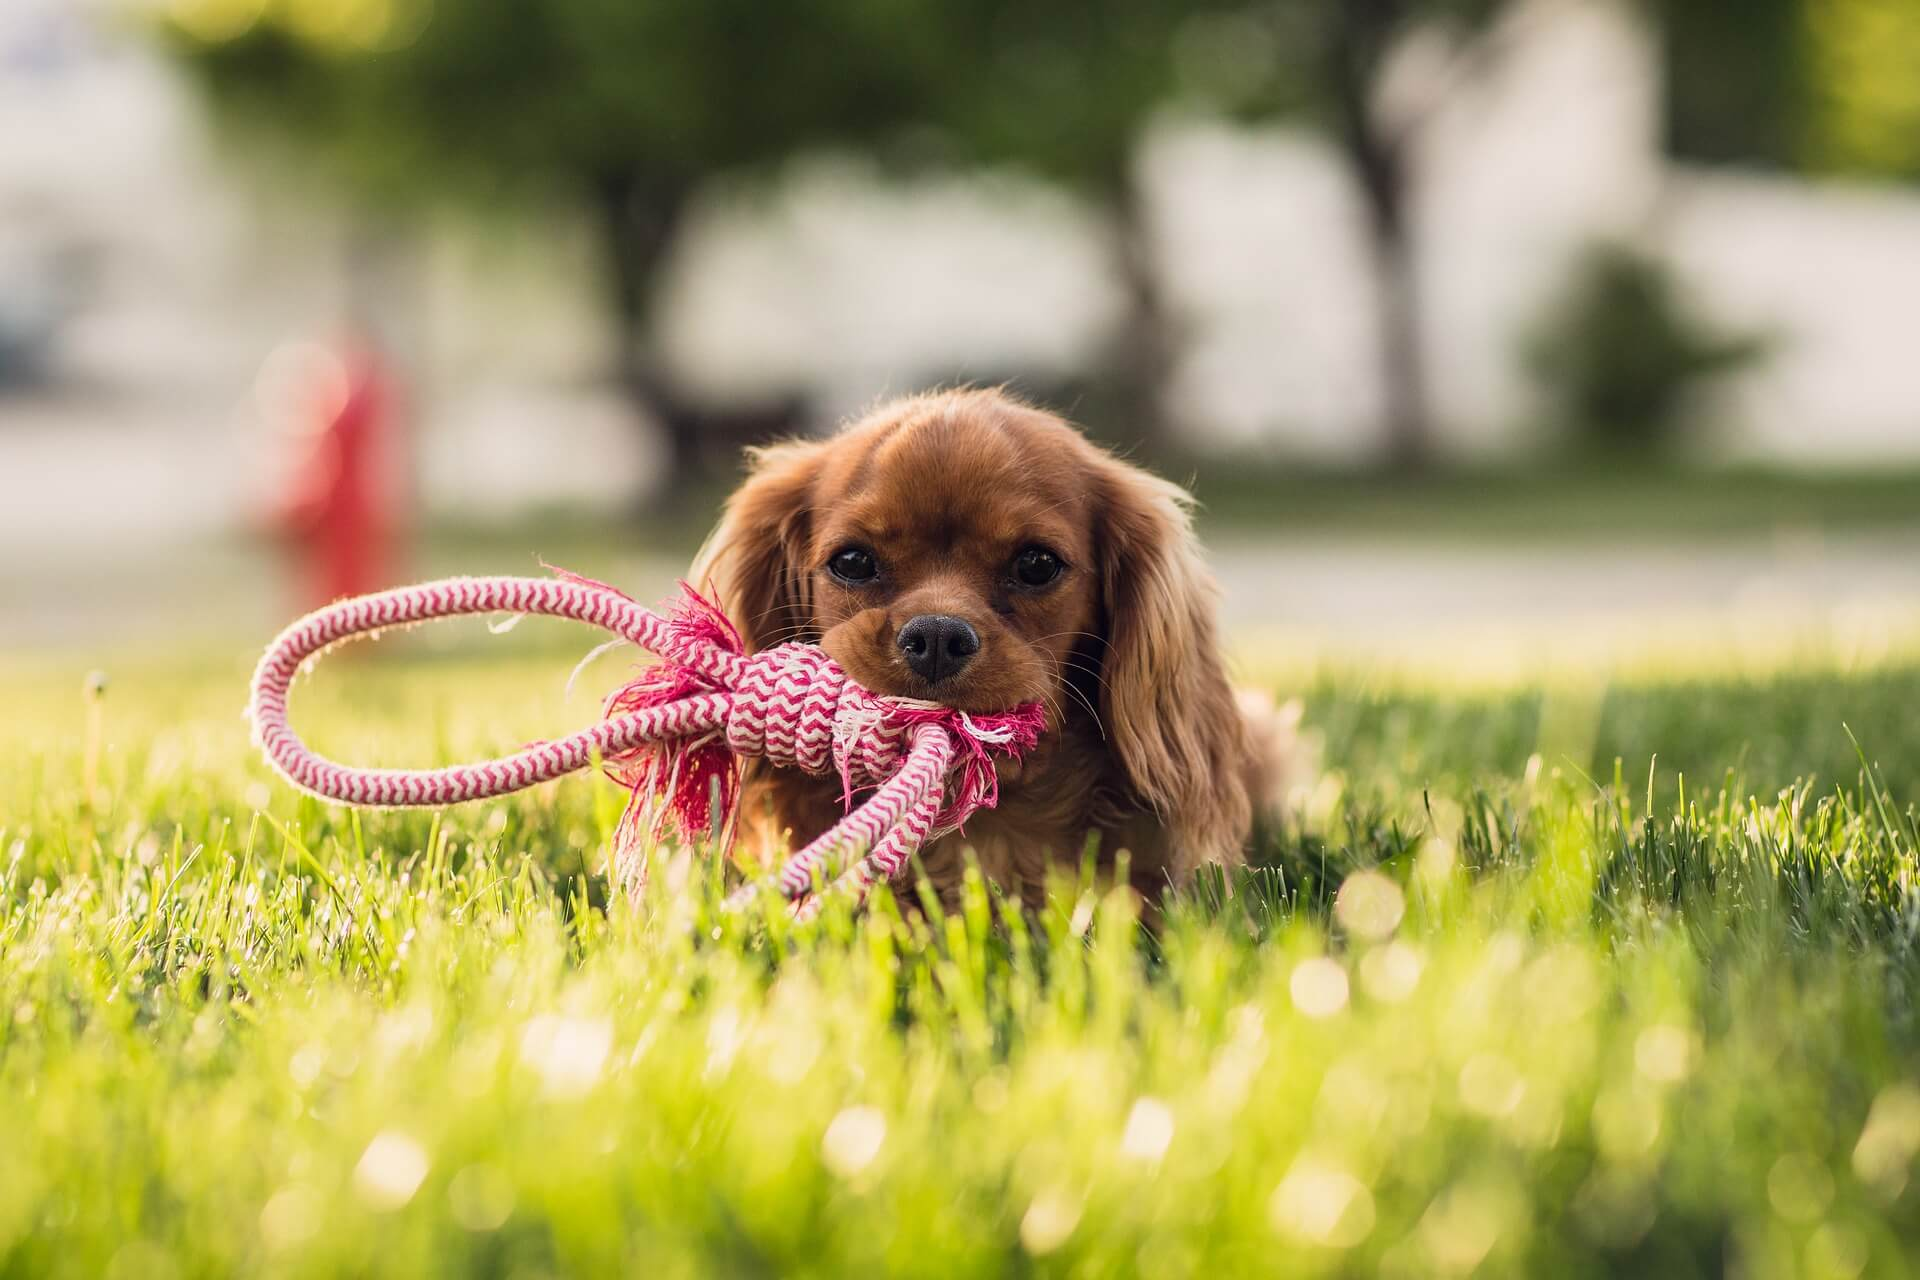 How to Keep Your Pet Safe and Sound During Yard Work